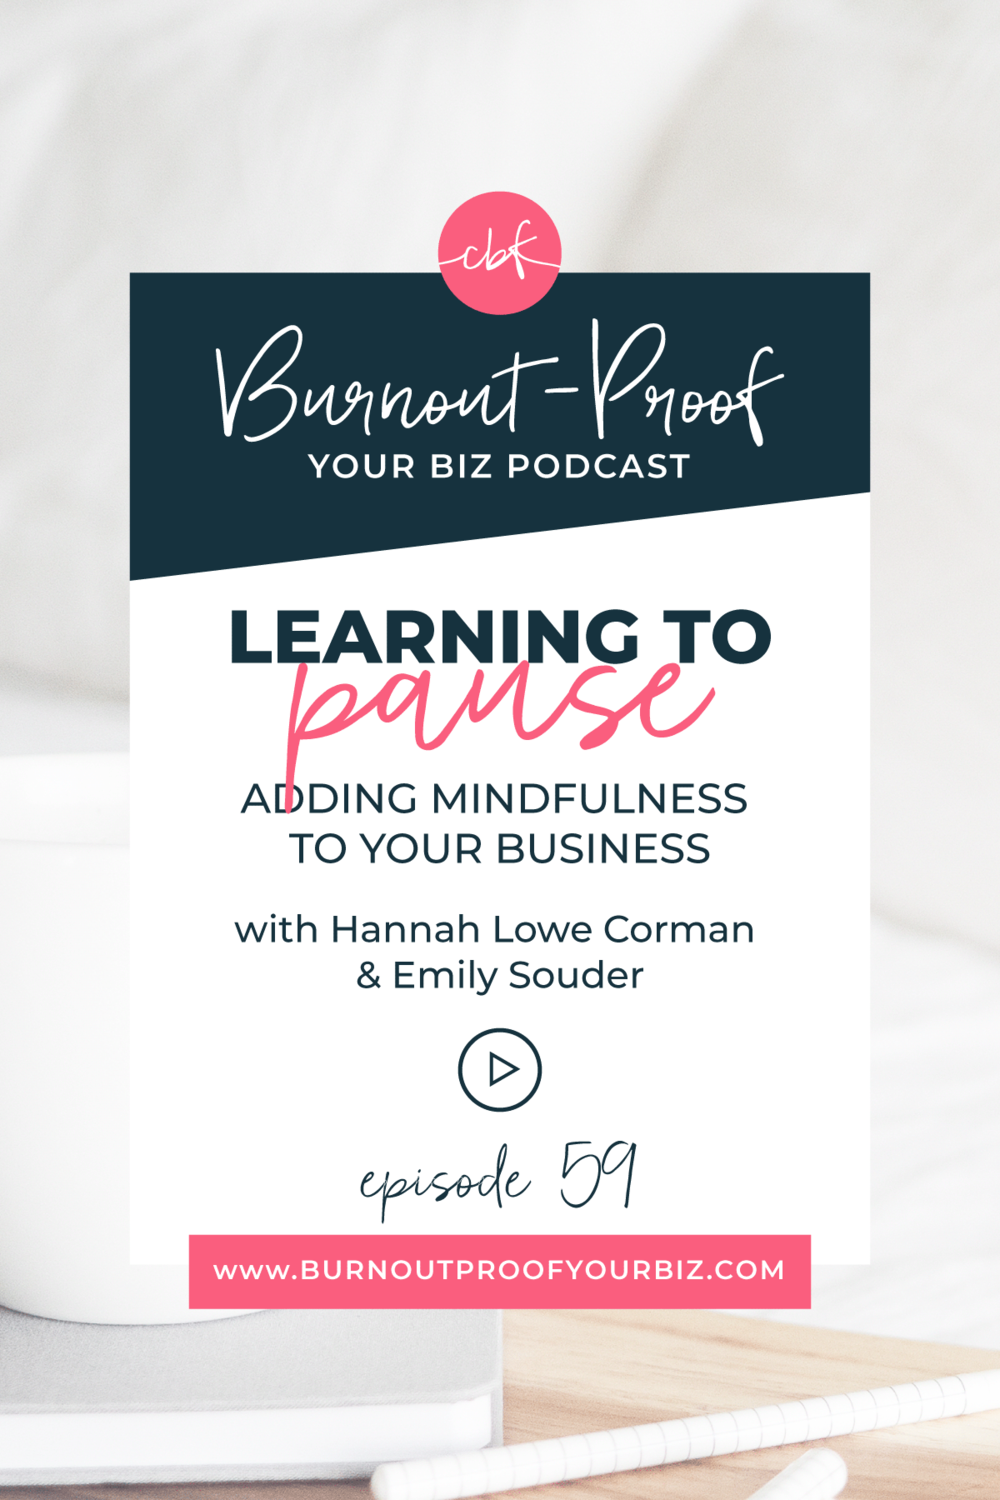 LEARNING TO PAUSE | ADDING MINDFULNESS TO YOUR BUSINESS on the Burnout-Proof Your Biz Podcast with Chelsea B Foster | Episode 059 - Living and Running a Business Mindfully with Hannah Lowe Corman and Emily Souder | Learn how to run your biz and live your dream life on your own terms without the fear of burnout | Learn how to run your biz and live your dream life on your own terms without the fear of burnout.  |||  LIVING MINDFULLY | SELF-LOVE FOR ENTREPRENEURS | MINDFUL MEDITATIONS FOR MOMS | REIKI HEALING | MUTLI-PASSIONATE CREATIVES | BUSINESS BESTIES